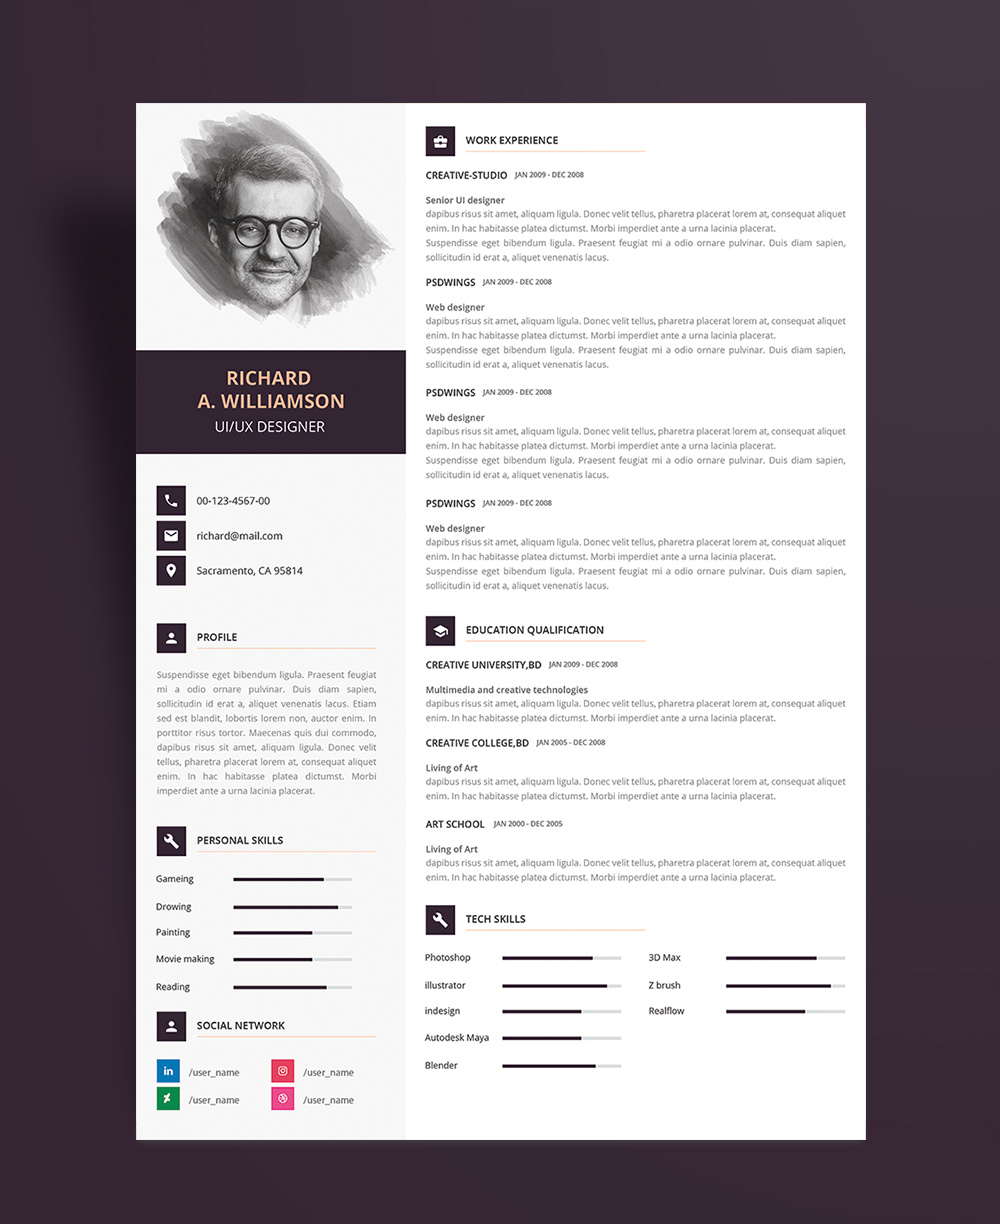 Creative Professional Resume (CV) Design Template With Cover Letter PSD File (3)